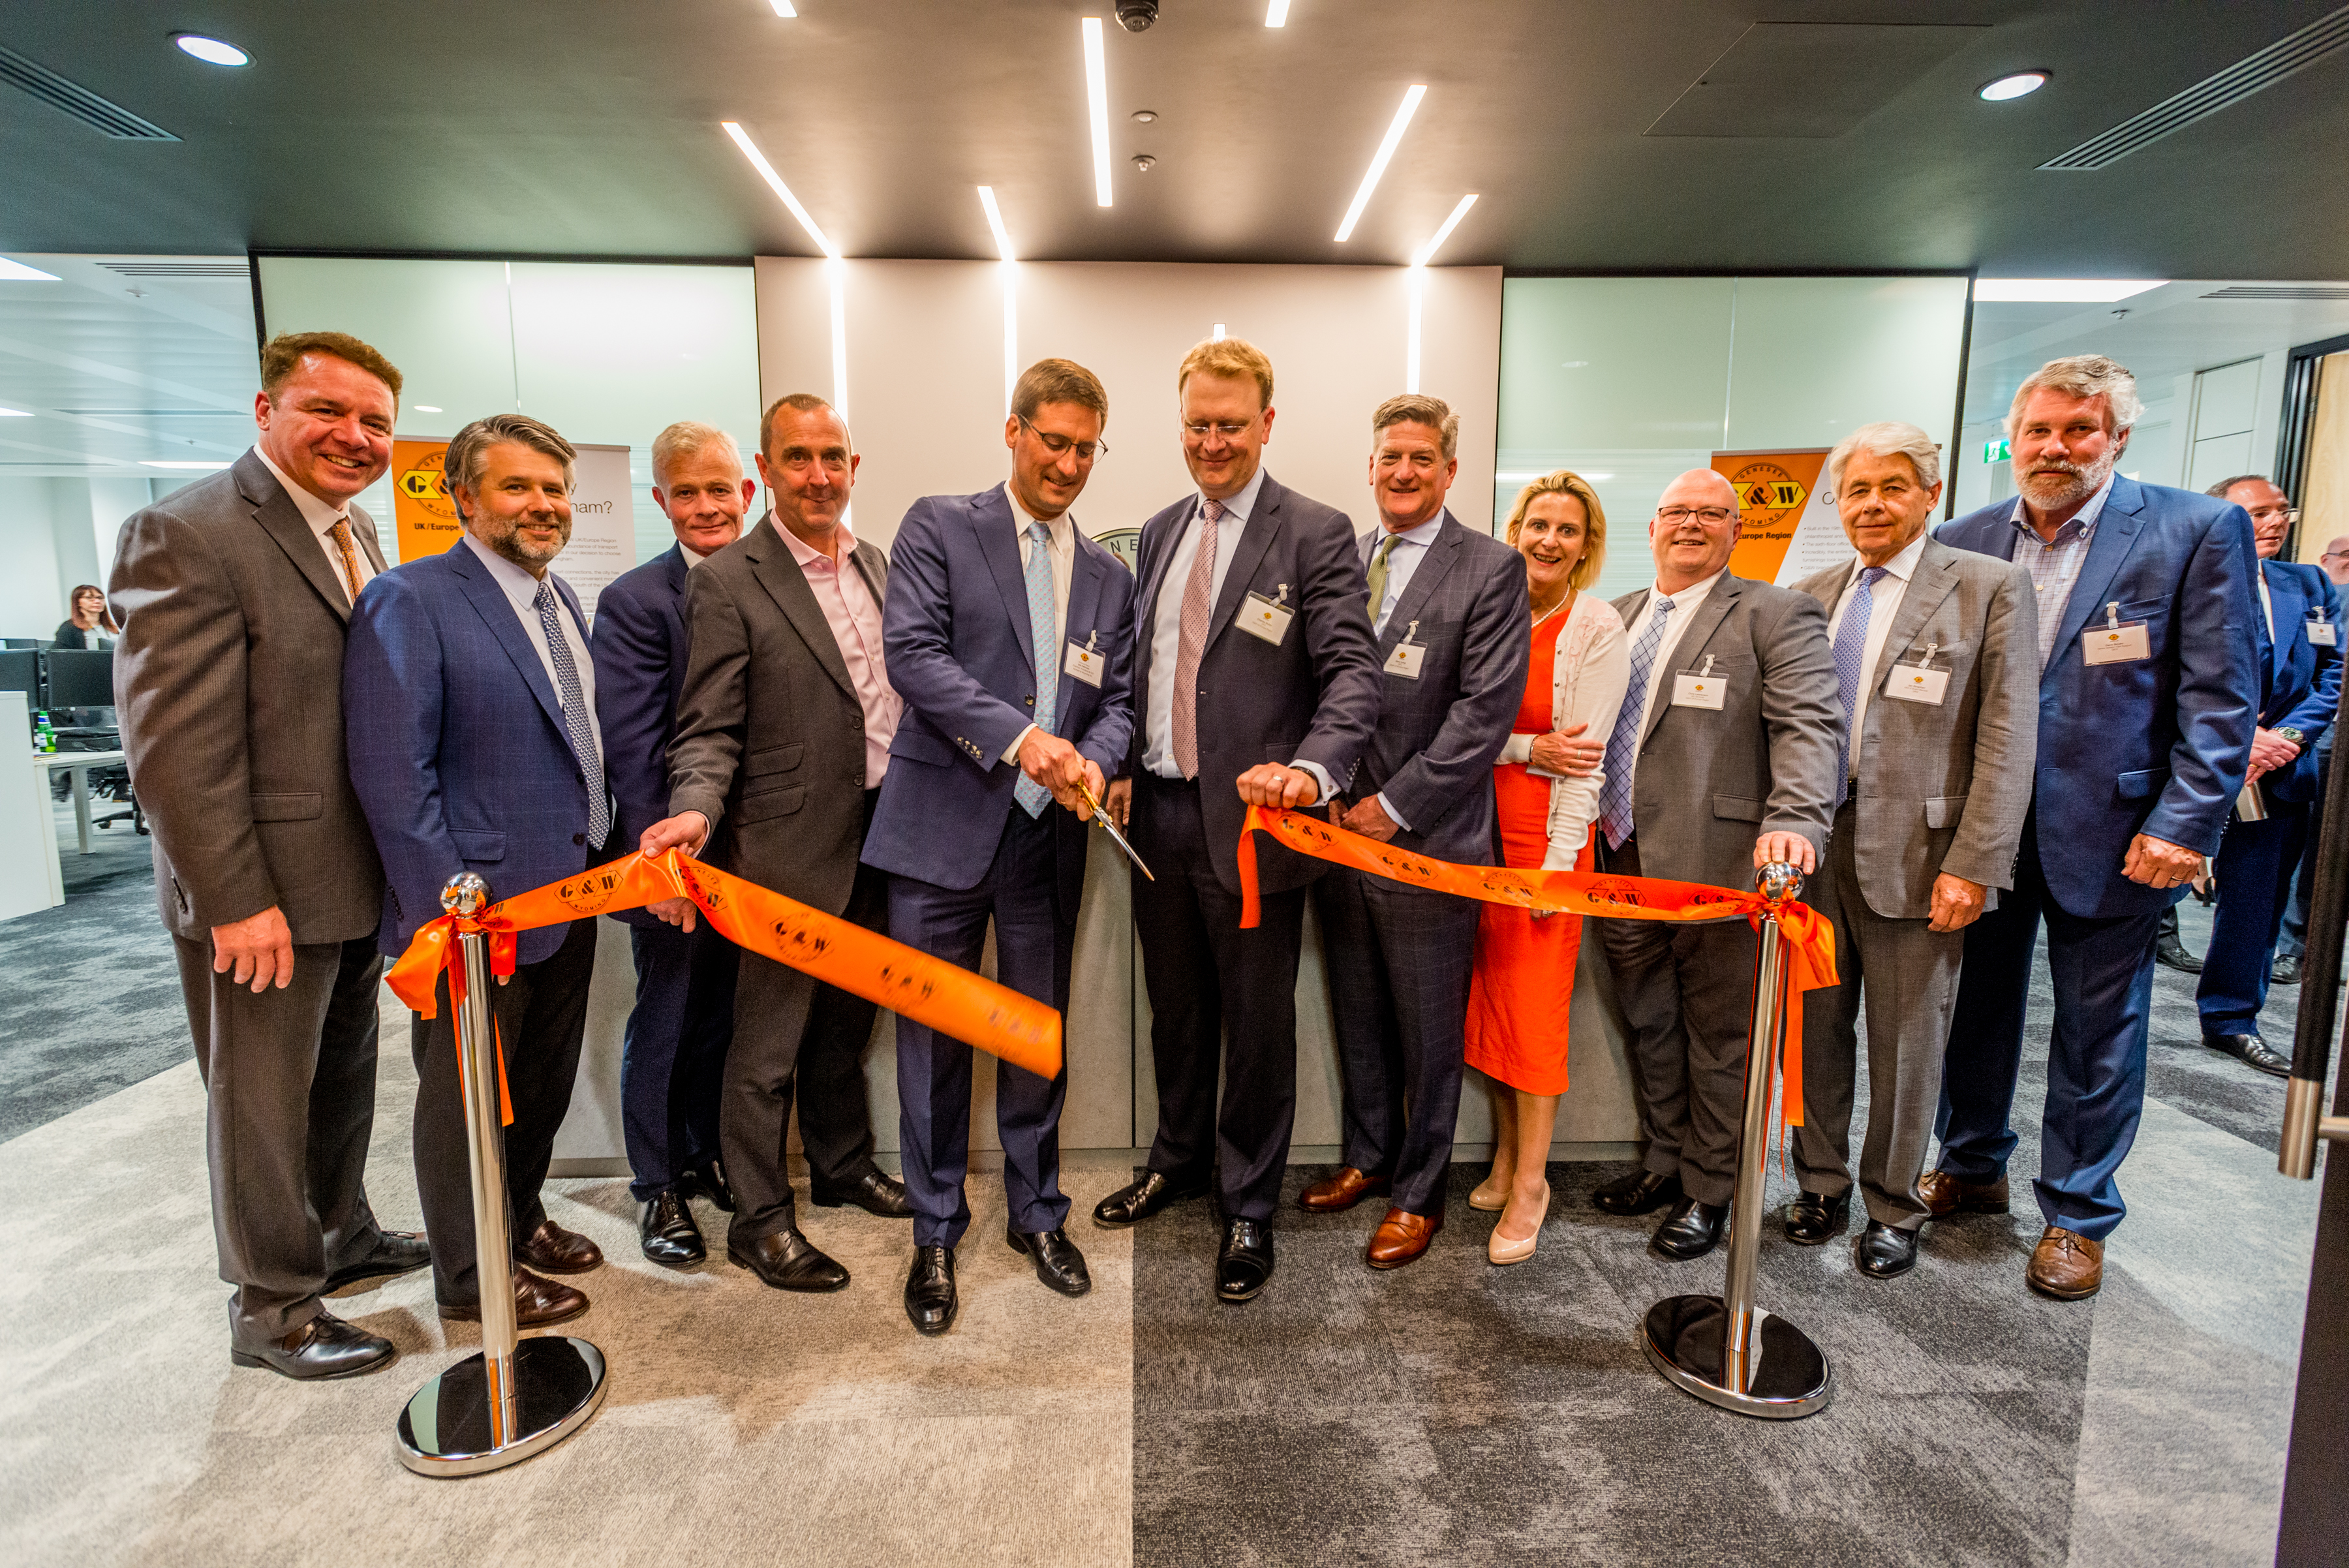 2019-06/g-w-birmingham-office-launch